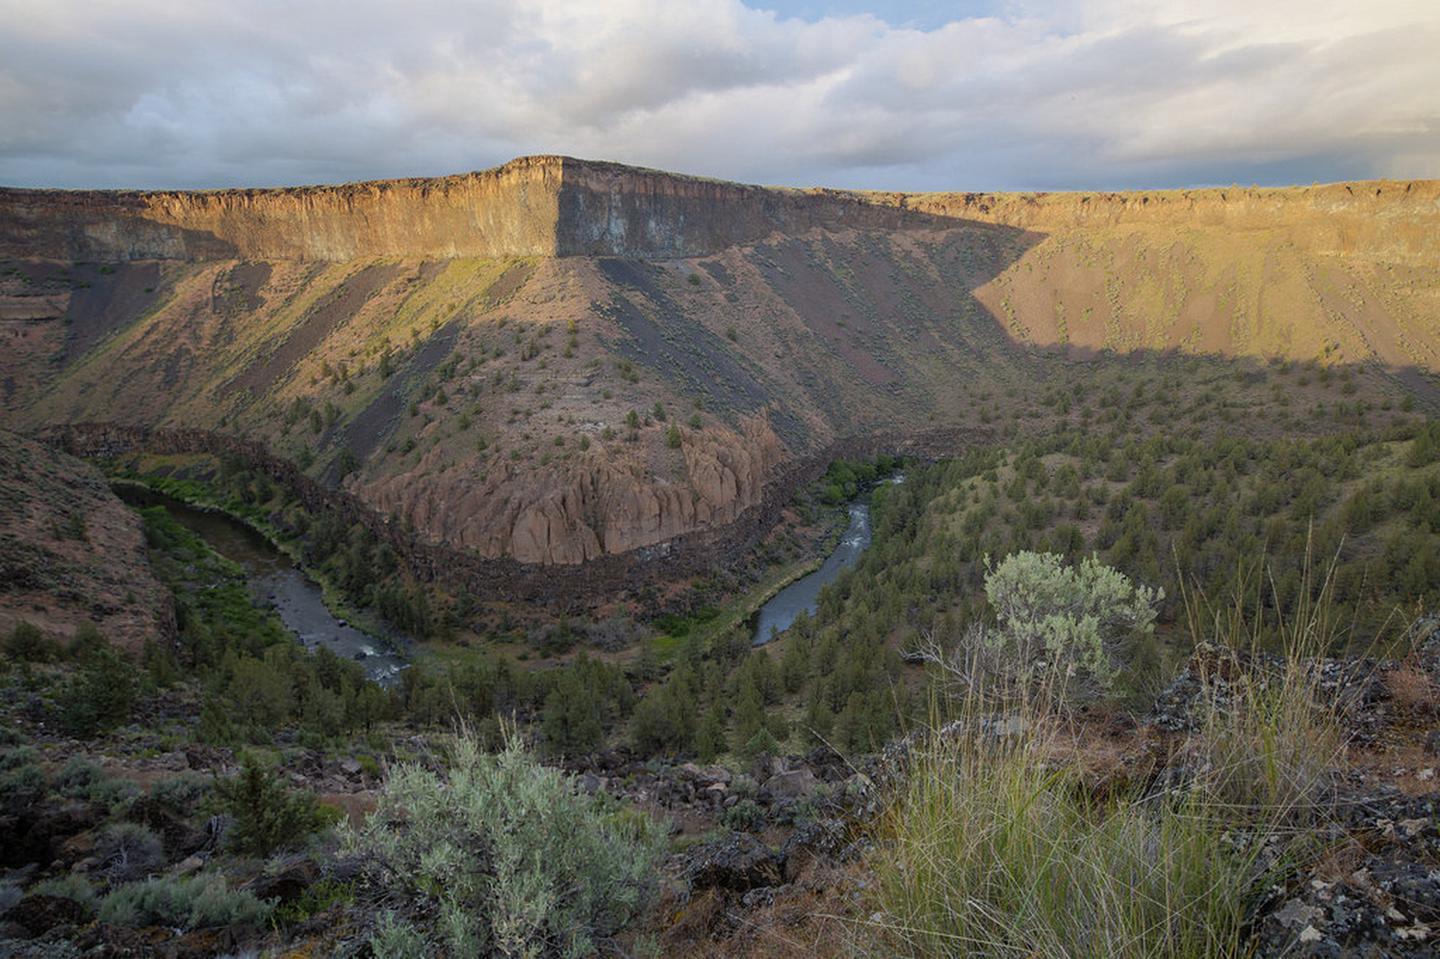 Canyonside view of the Crooked Wild and Scenic river.Canyonside view of the Crooked Wild and Scenic river.